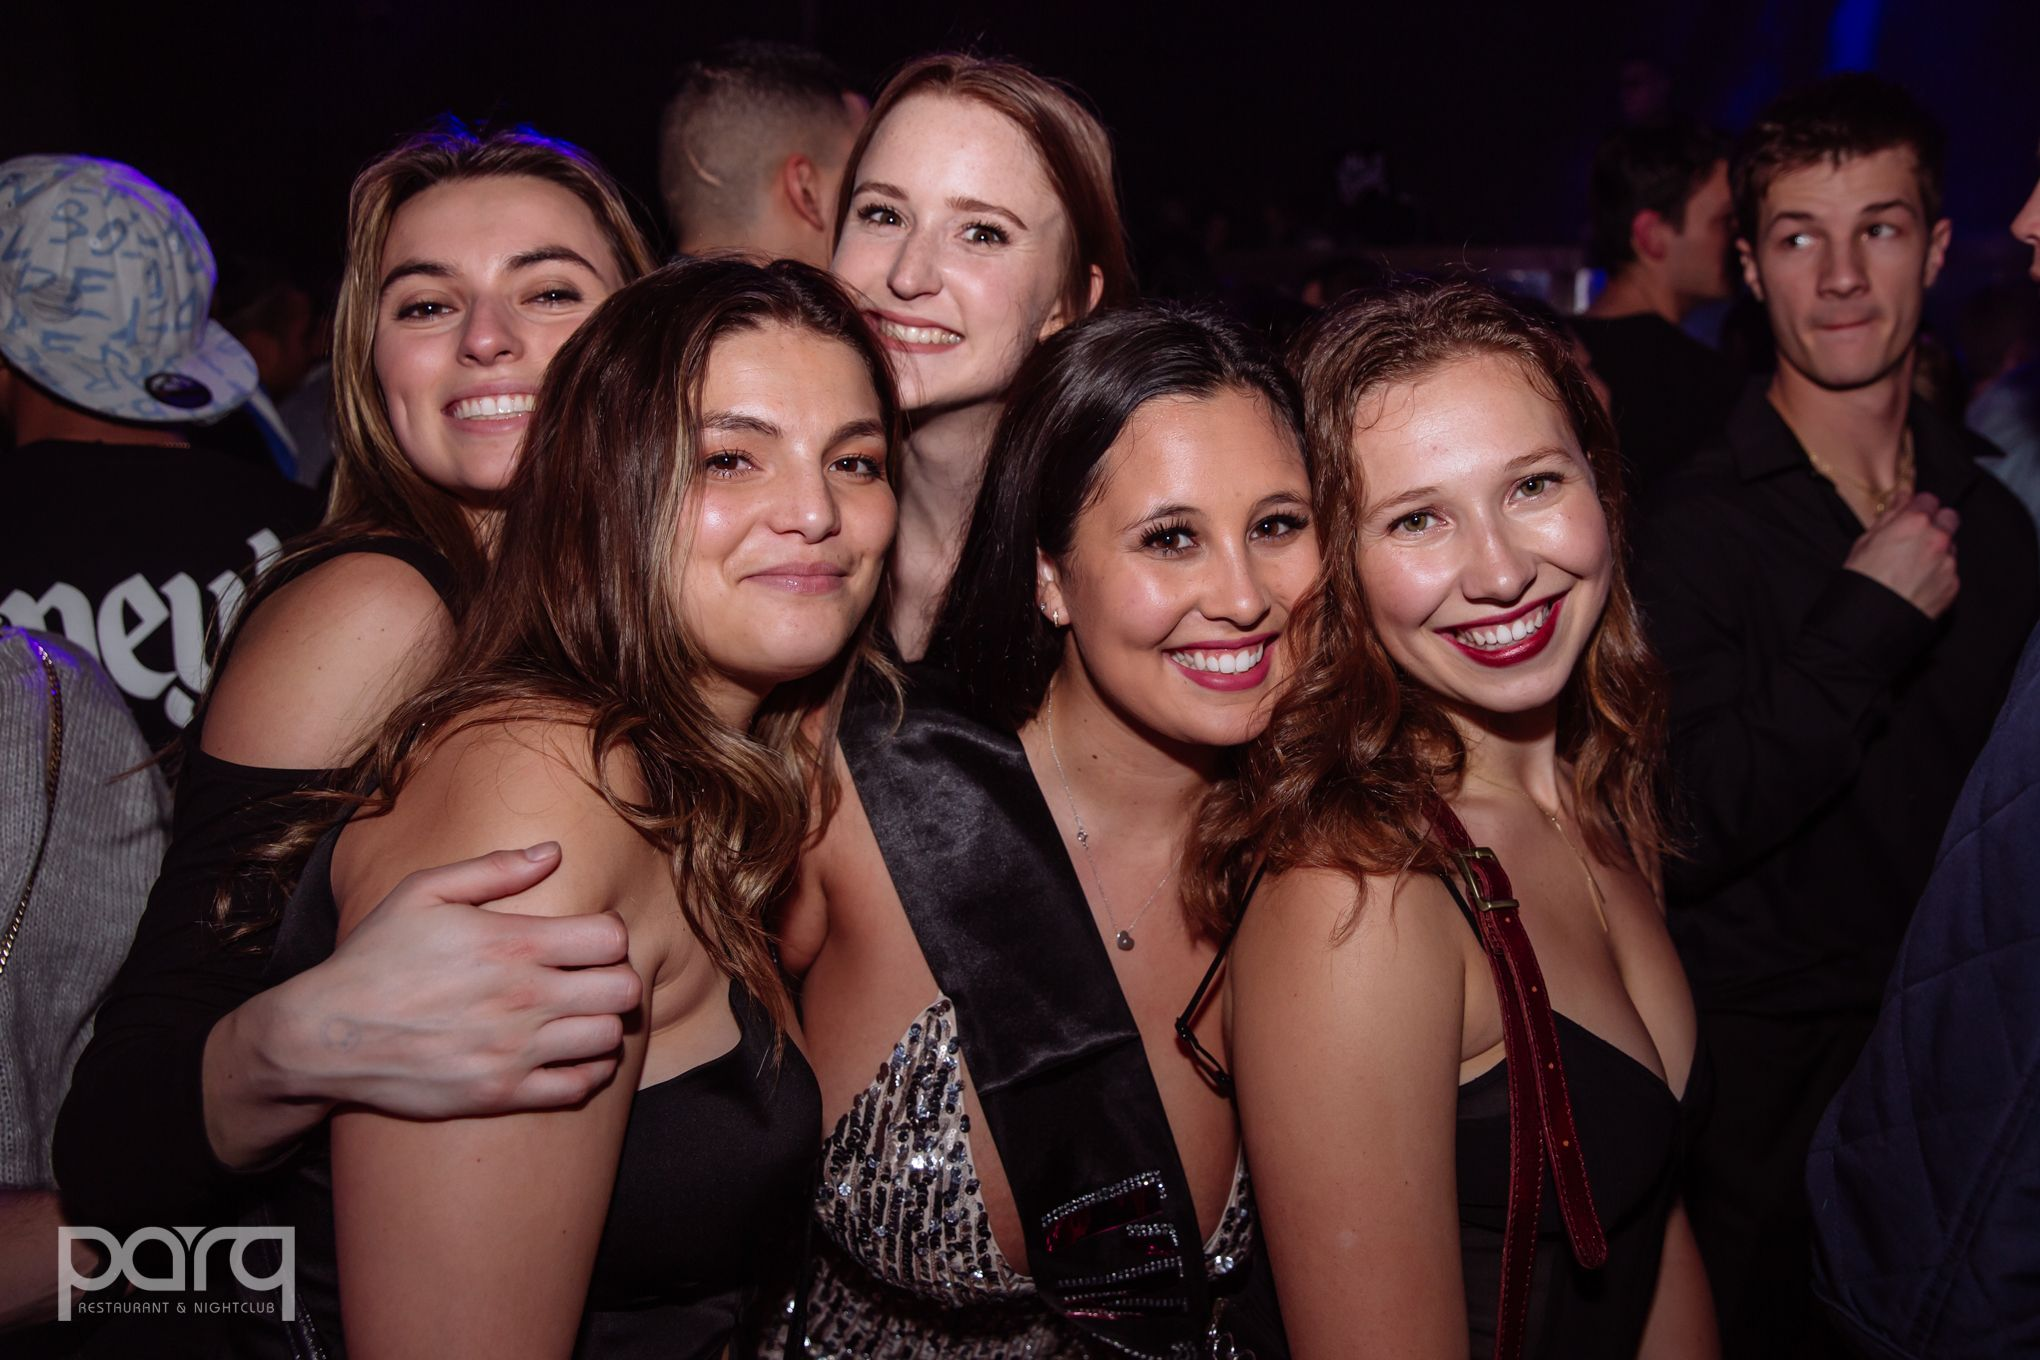 02.23.19 Parq - Lost Frequencies-34.jpg